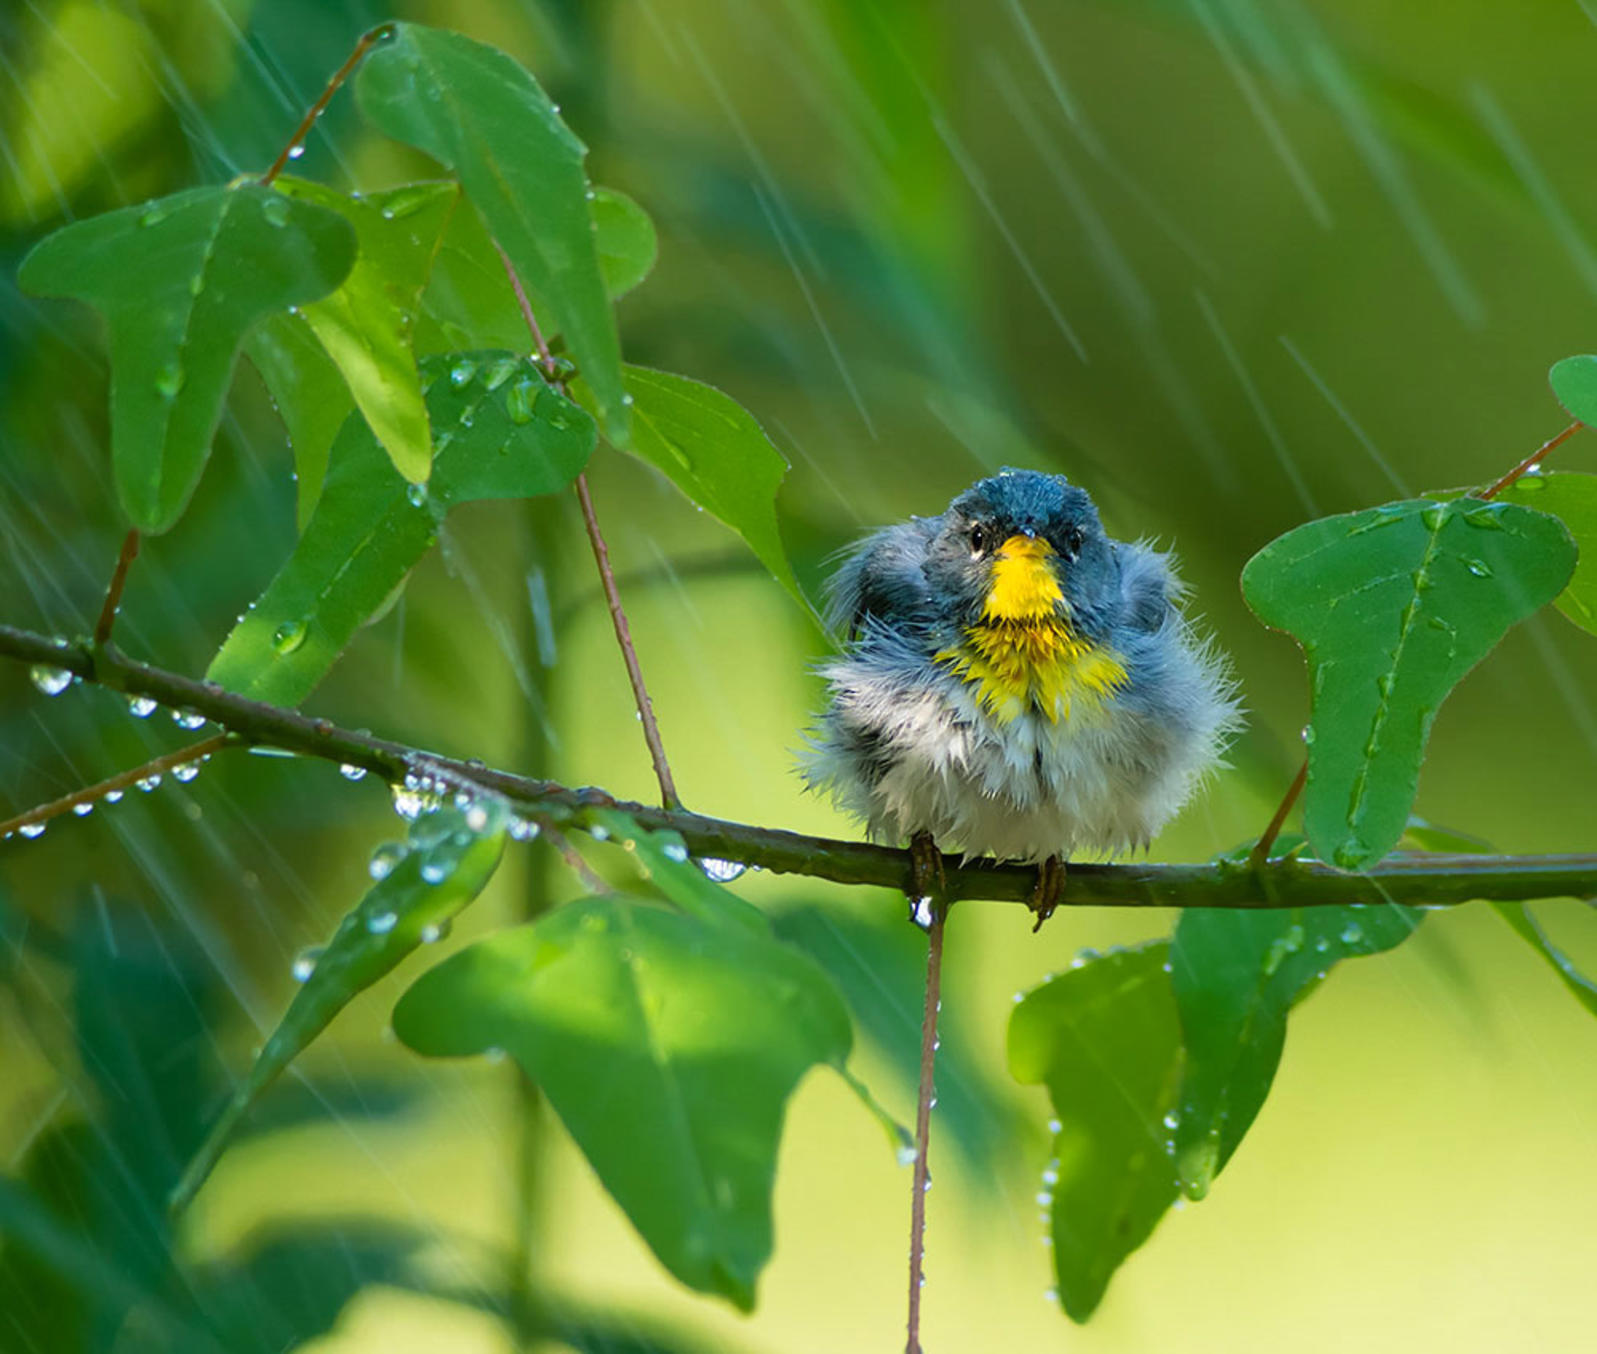 Why Do Birds Avoid Flying in the Rain? | Audubon